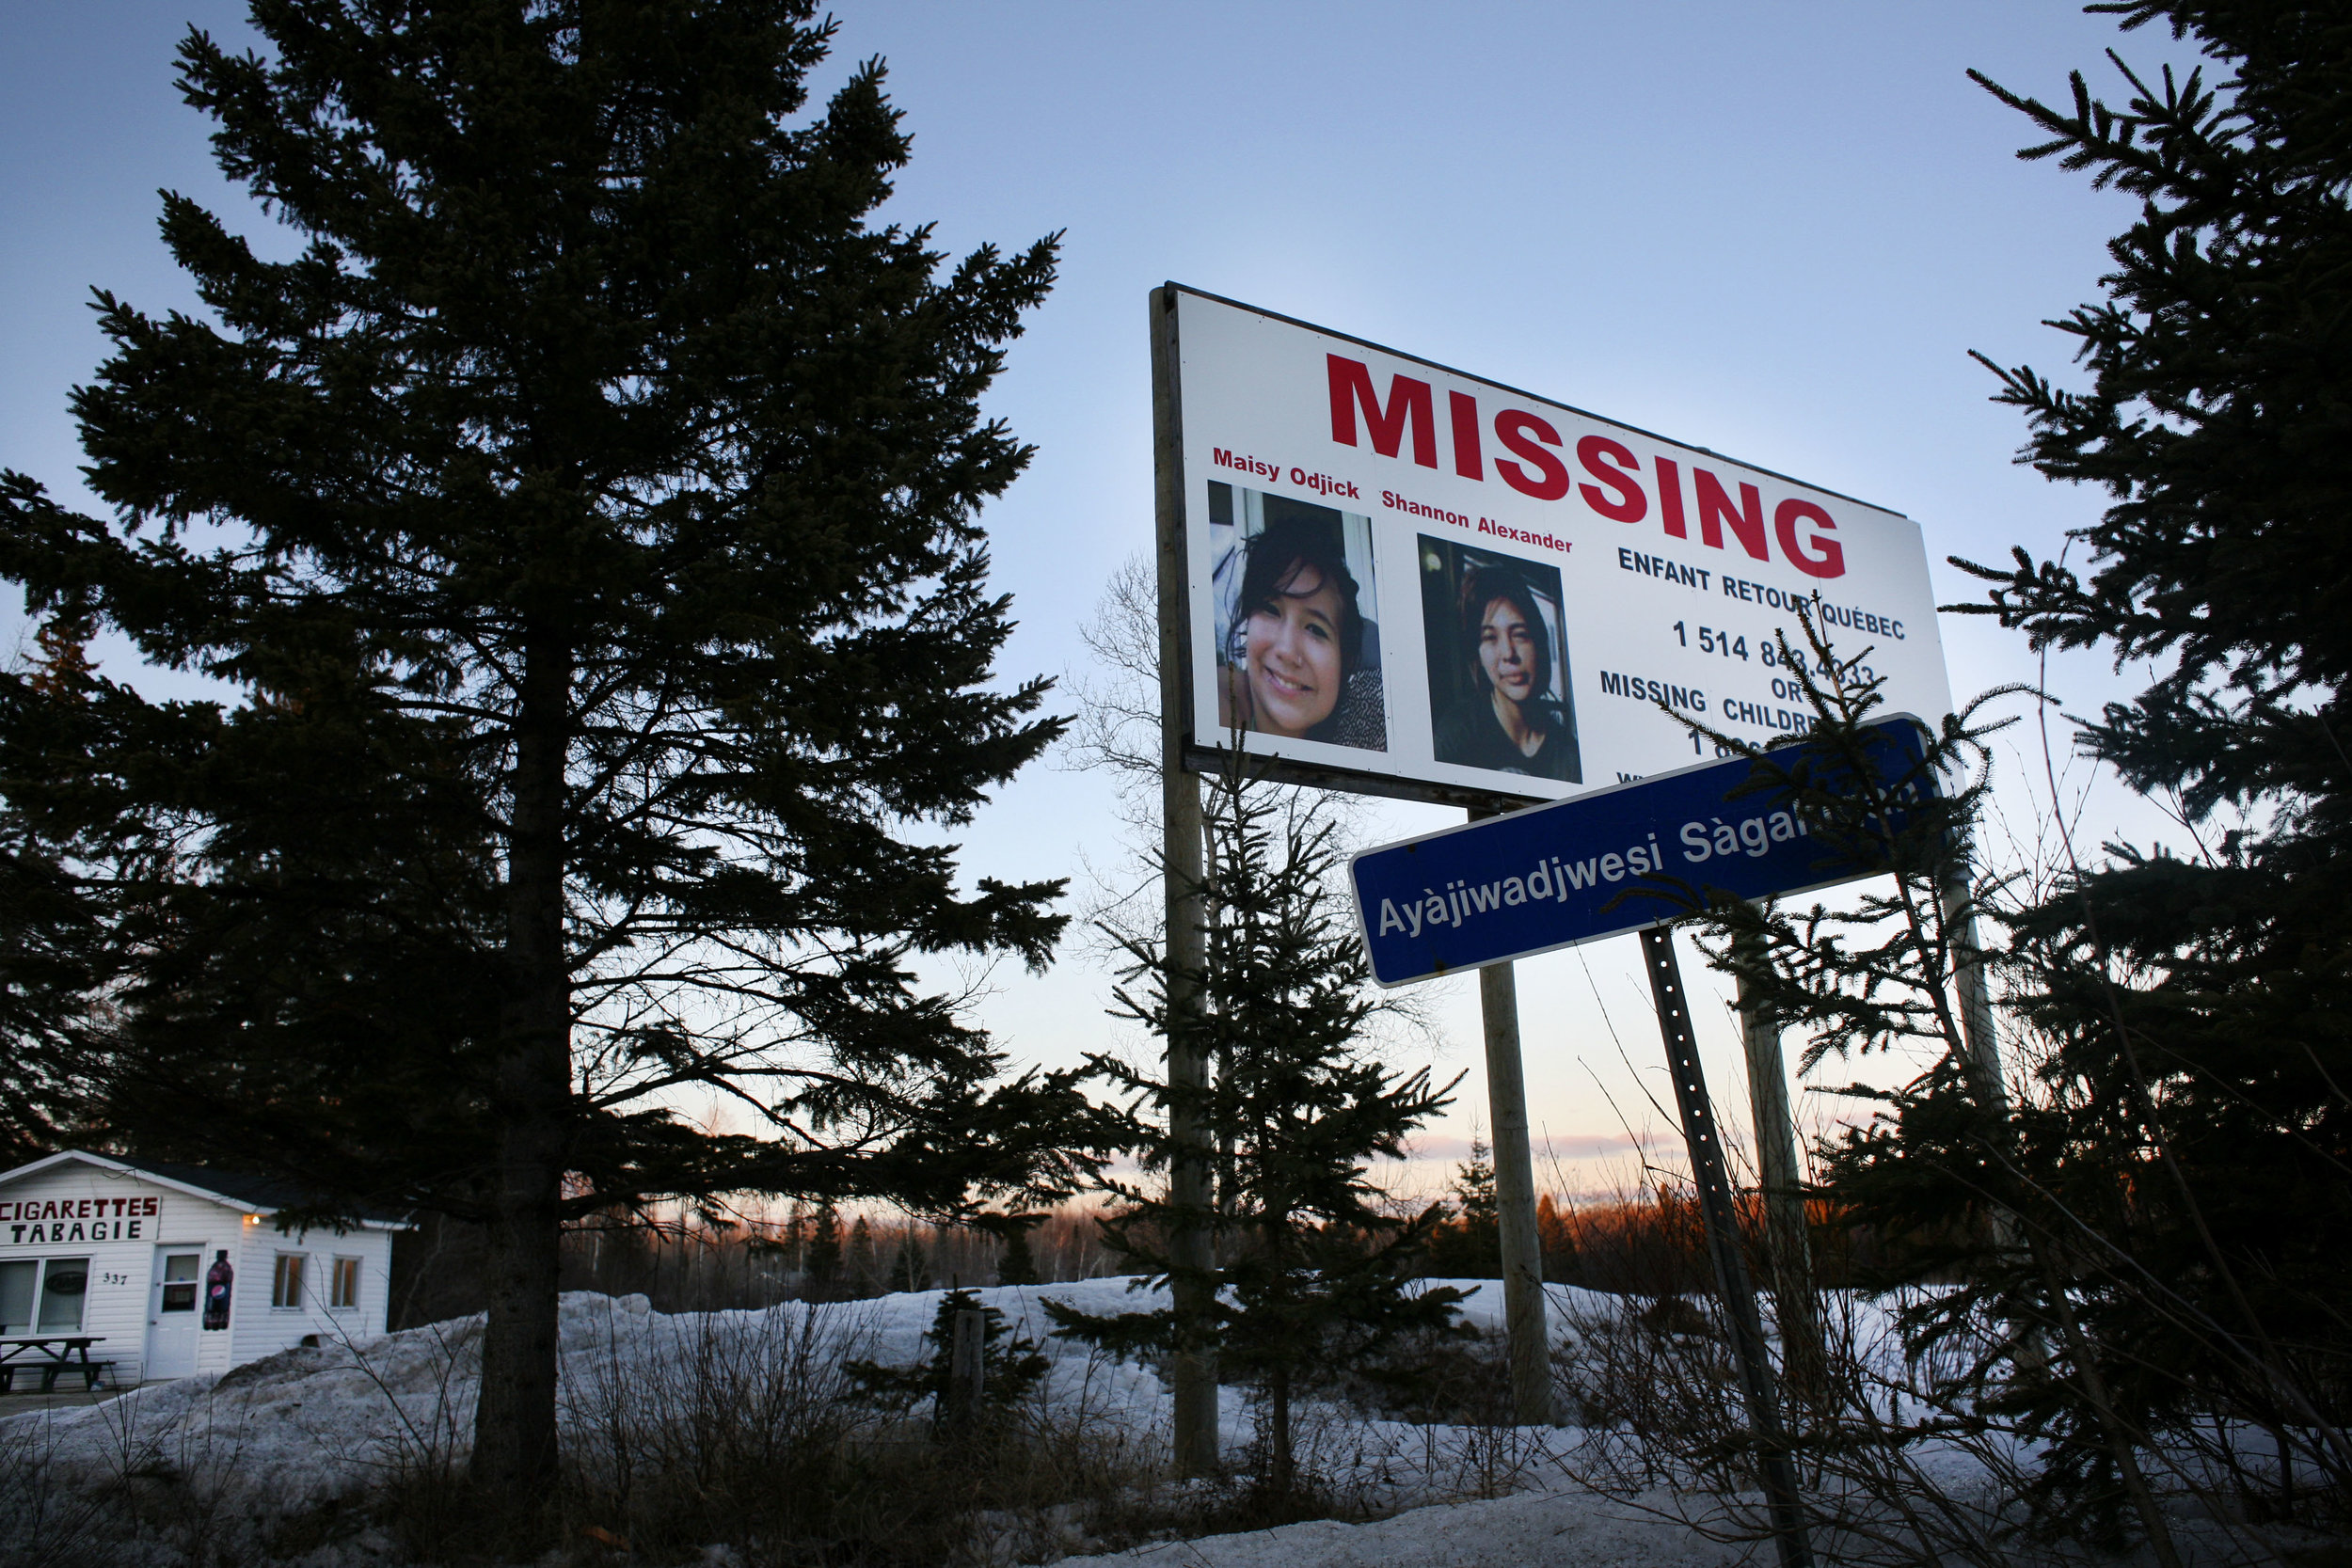 Indigenous teenagers Maisy Odjick and Shannon Alexander disappeared from Maniwaki in September 2008. Since 1980, at least 1,073 indigenous Canadian women have been murdered and more than 100 have gone missing, according to government statistics.(DEVON HAYNIE FOR USN&WR)